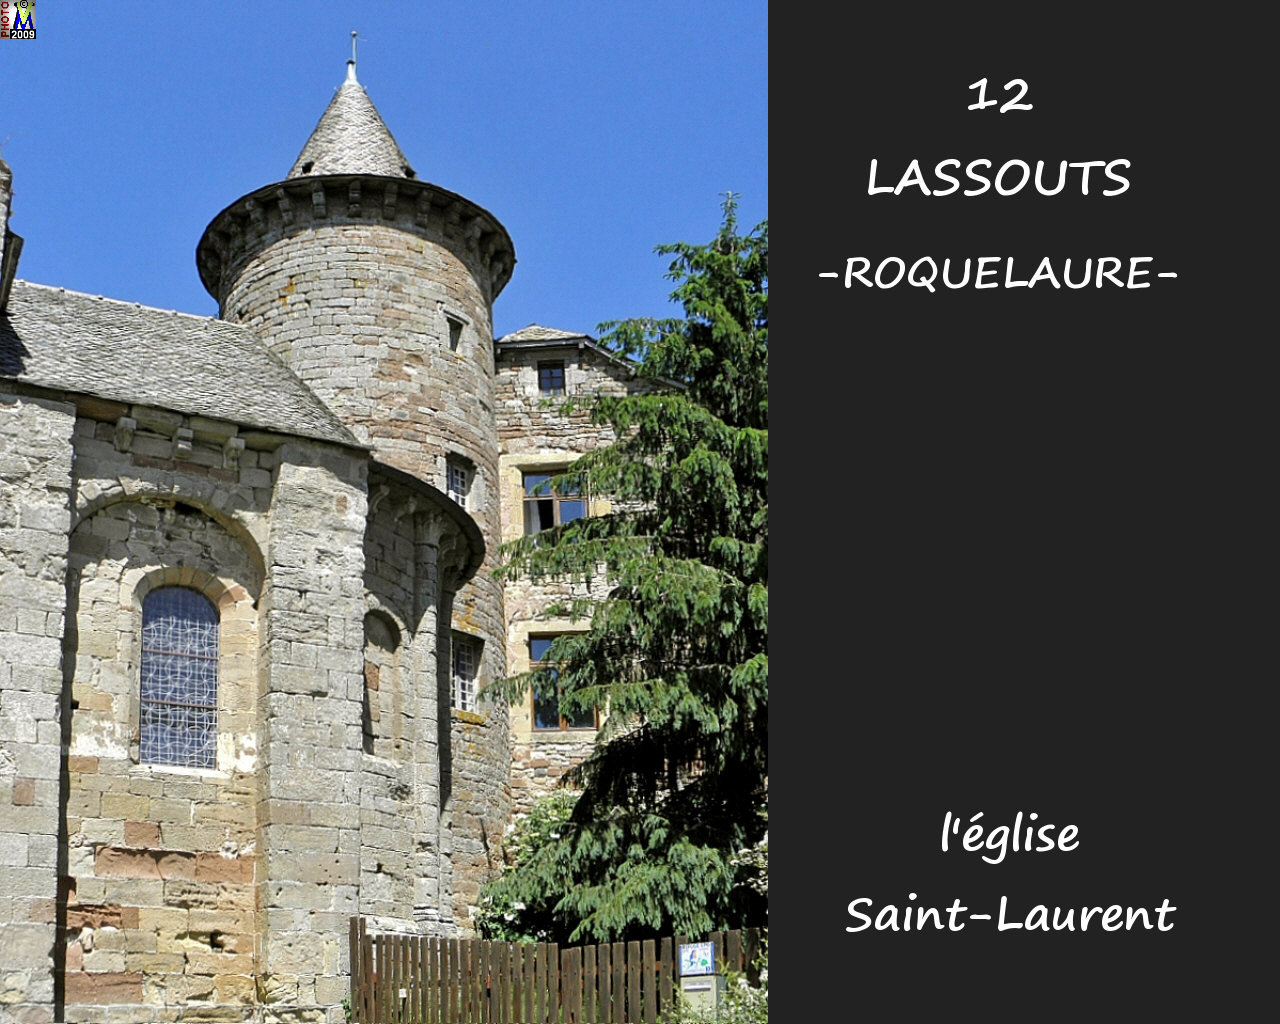 12LASSOUTS-ROQUE_chapelle_104.jpg